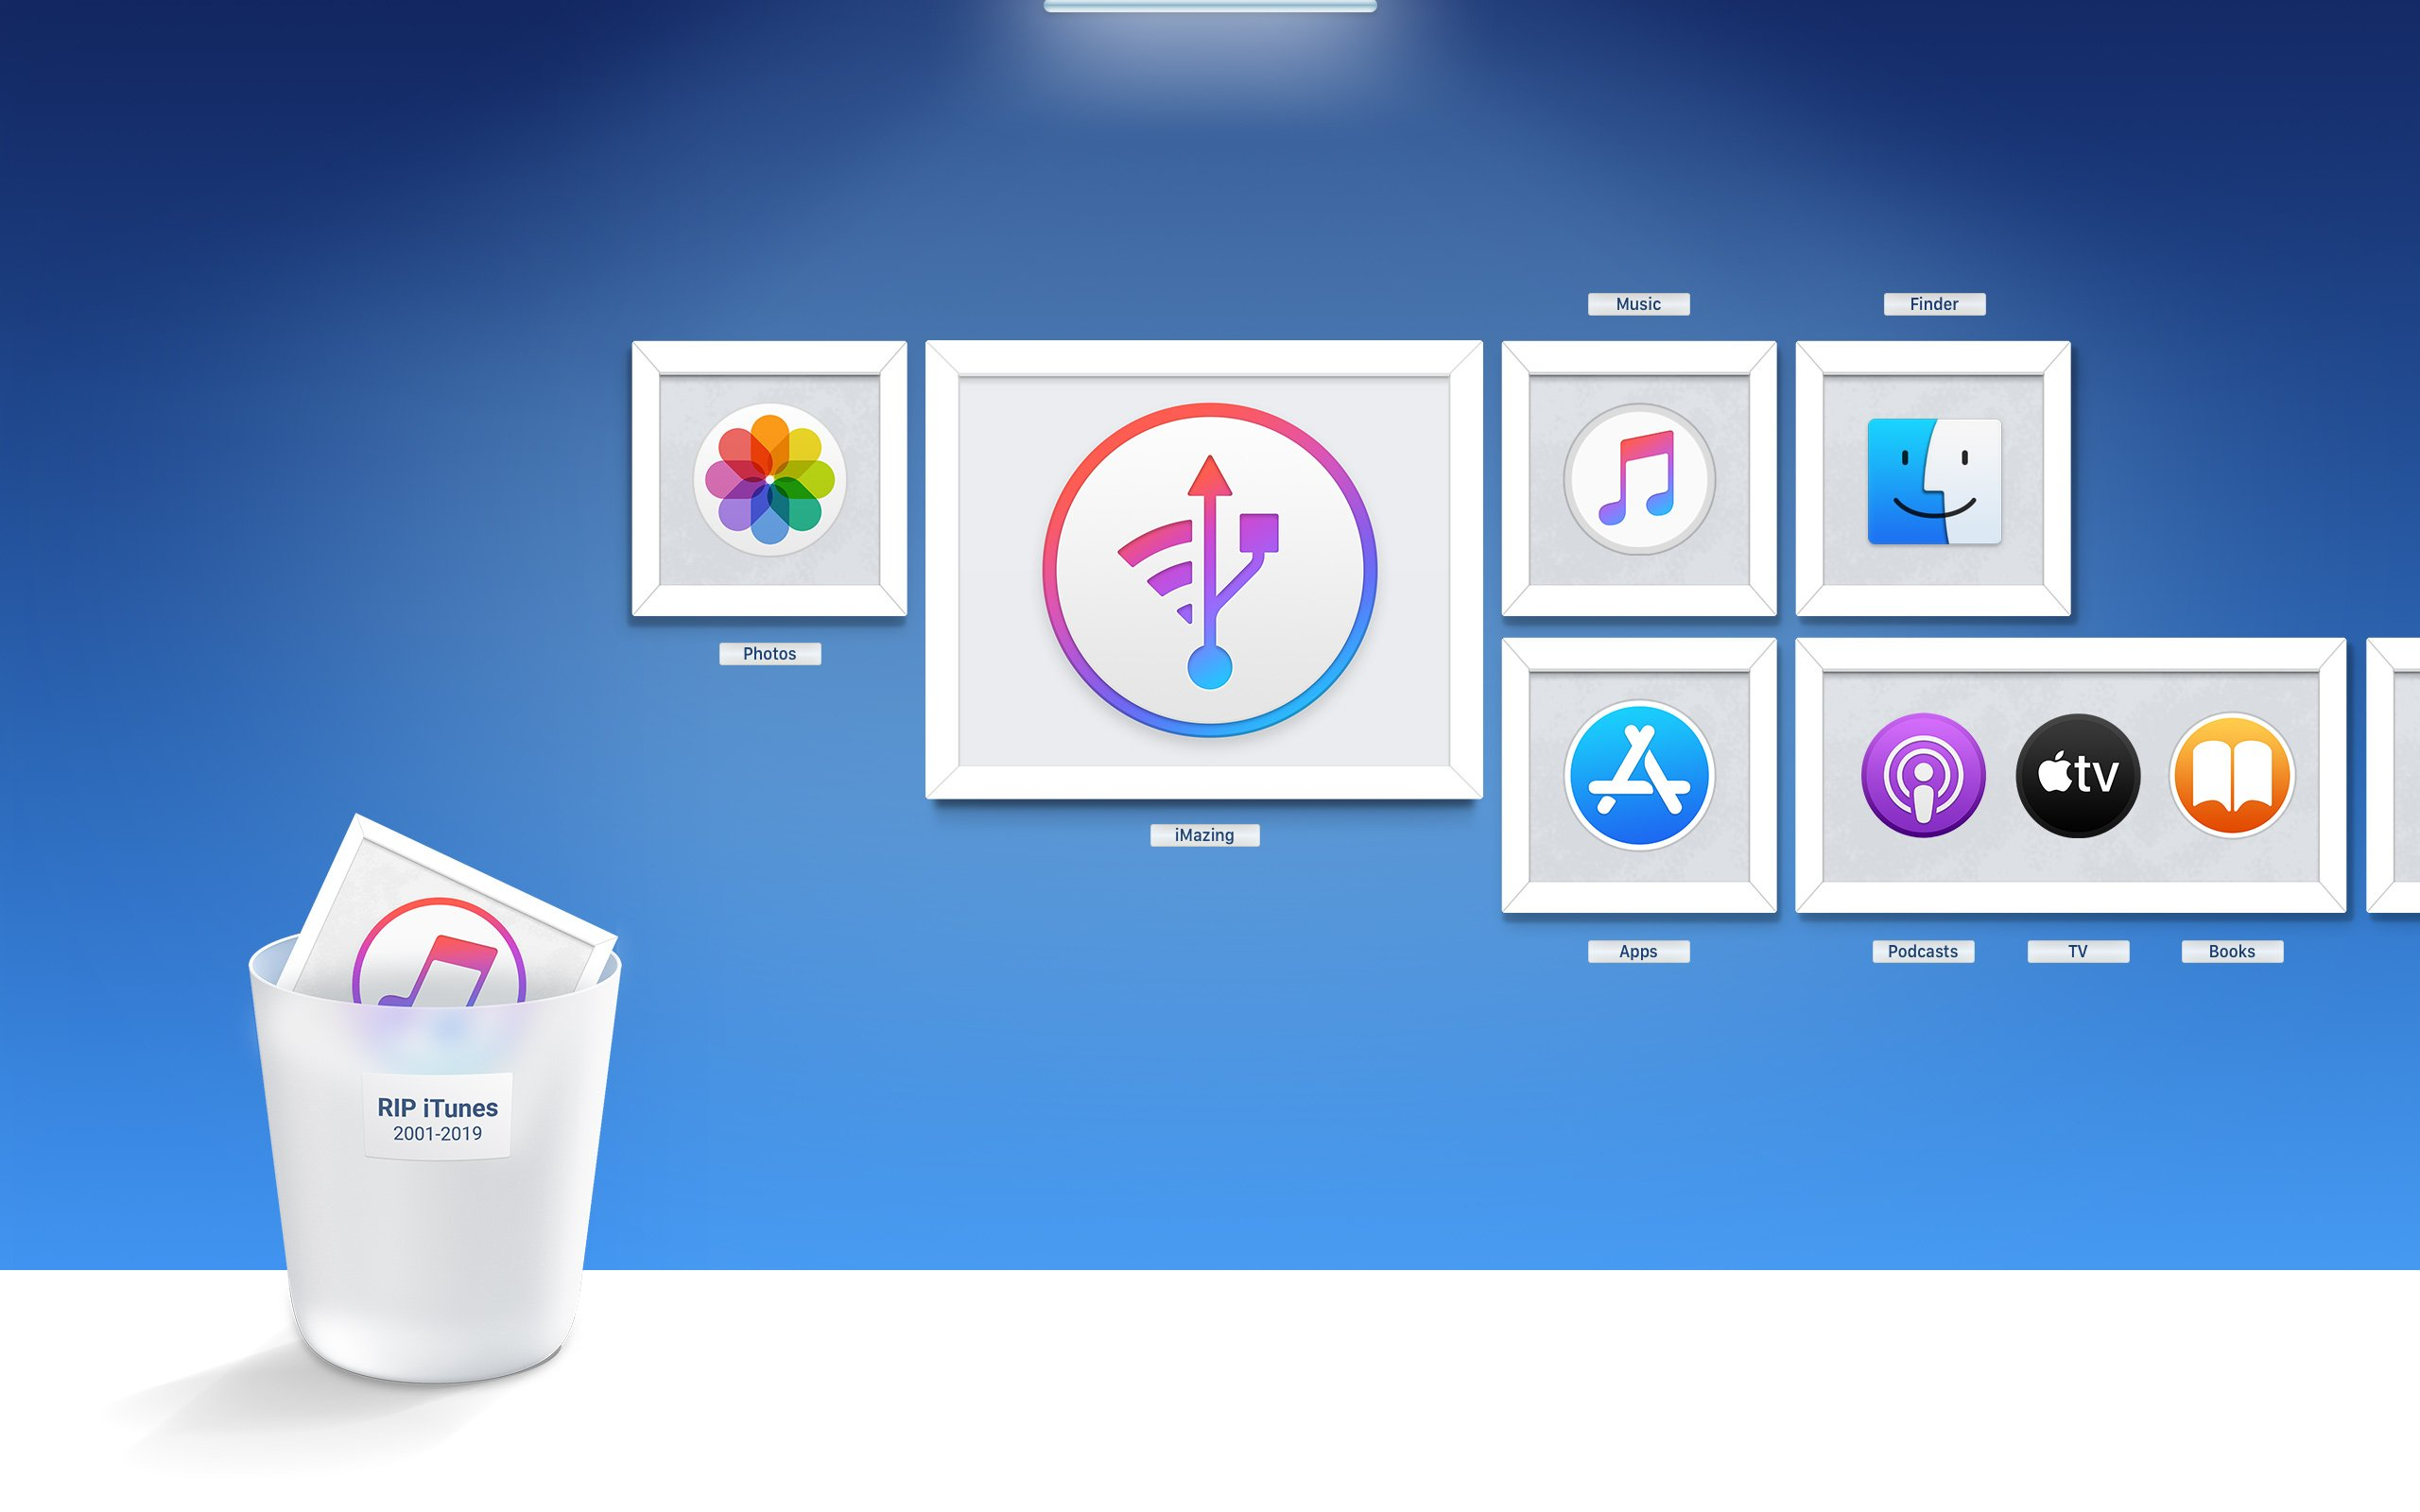 What are 'iTunes Alternatives' and why are they needed?